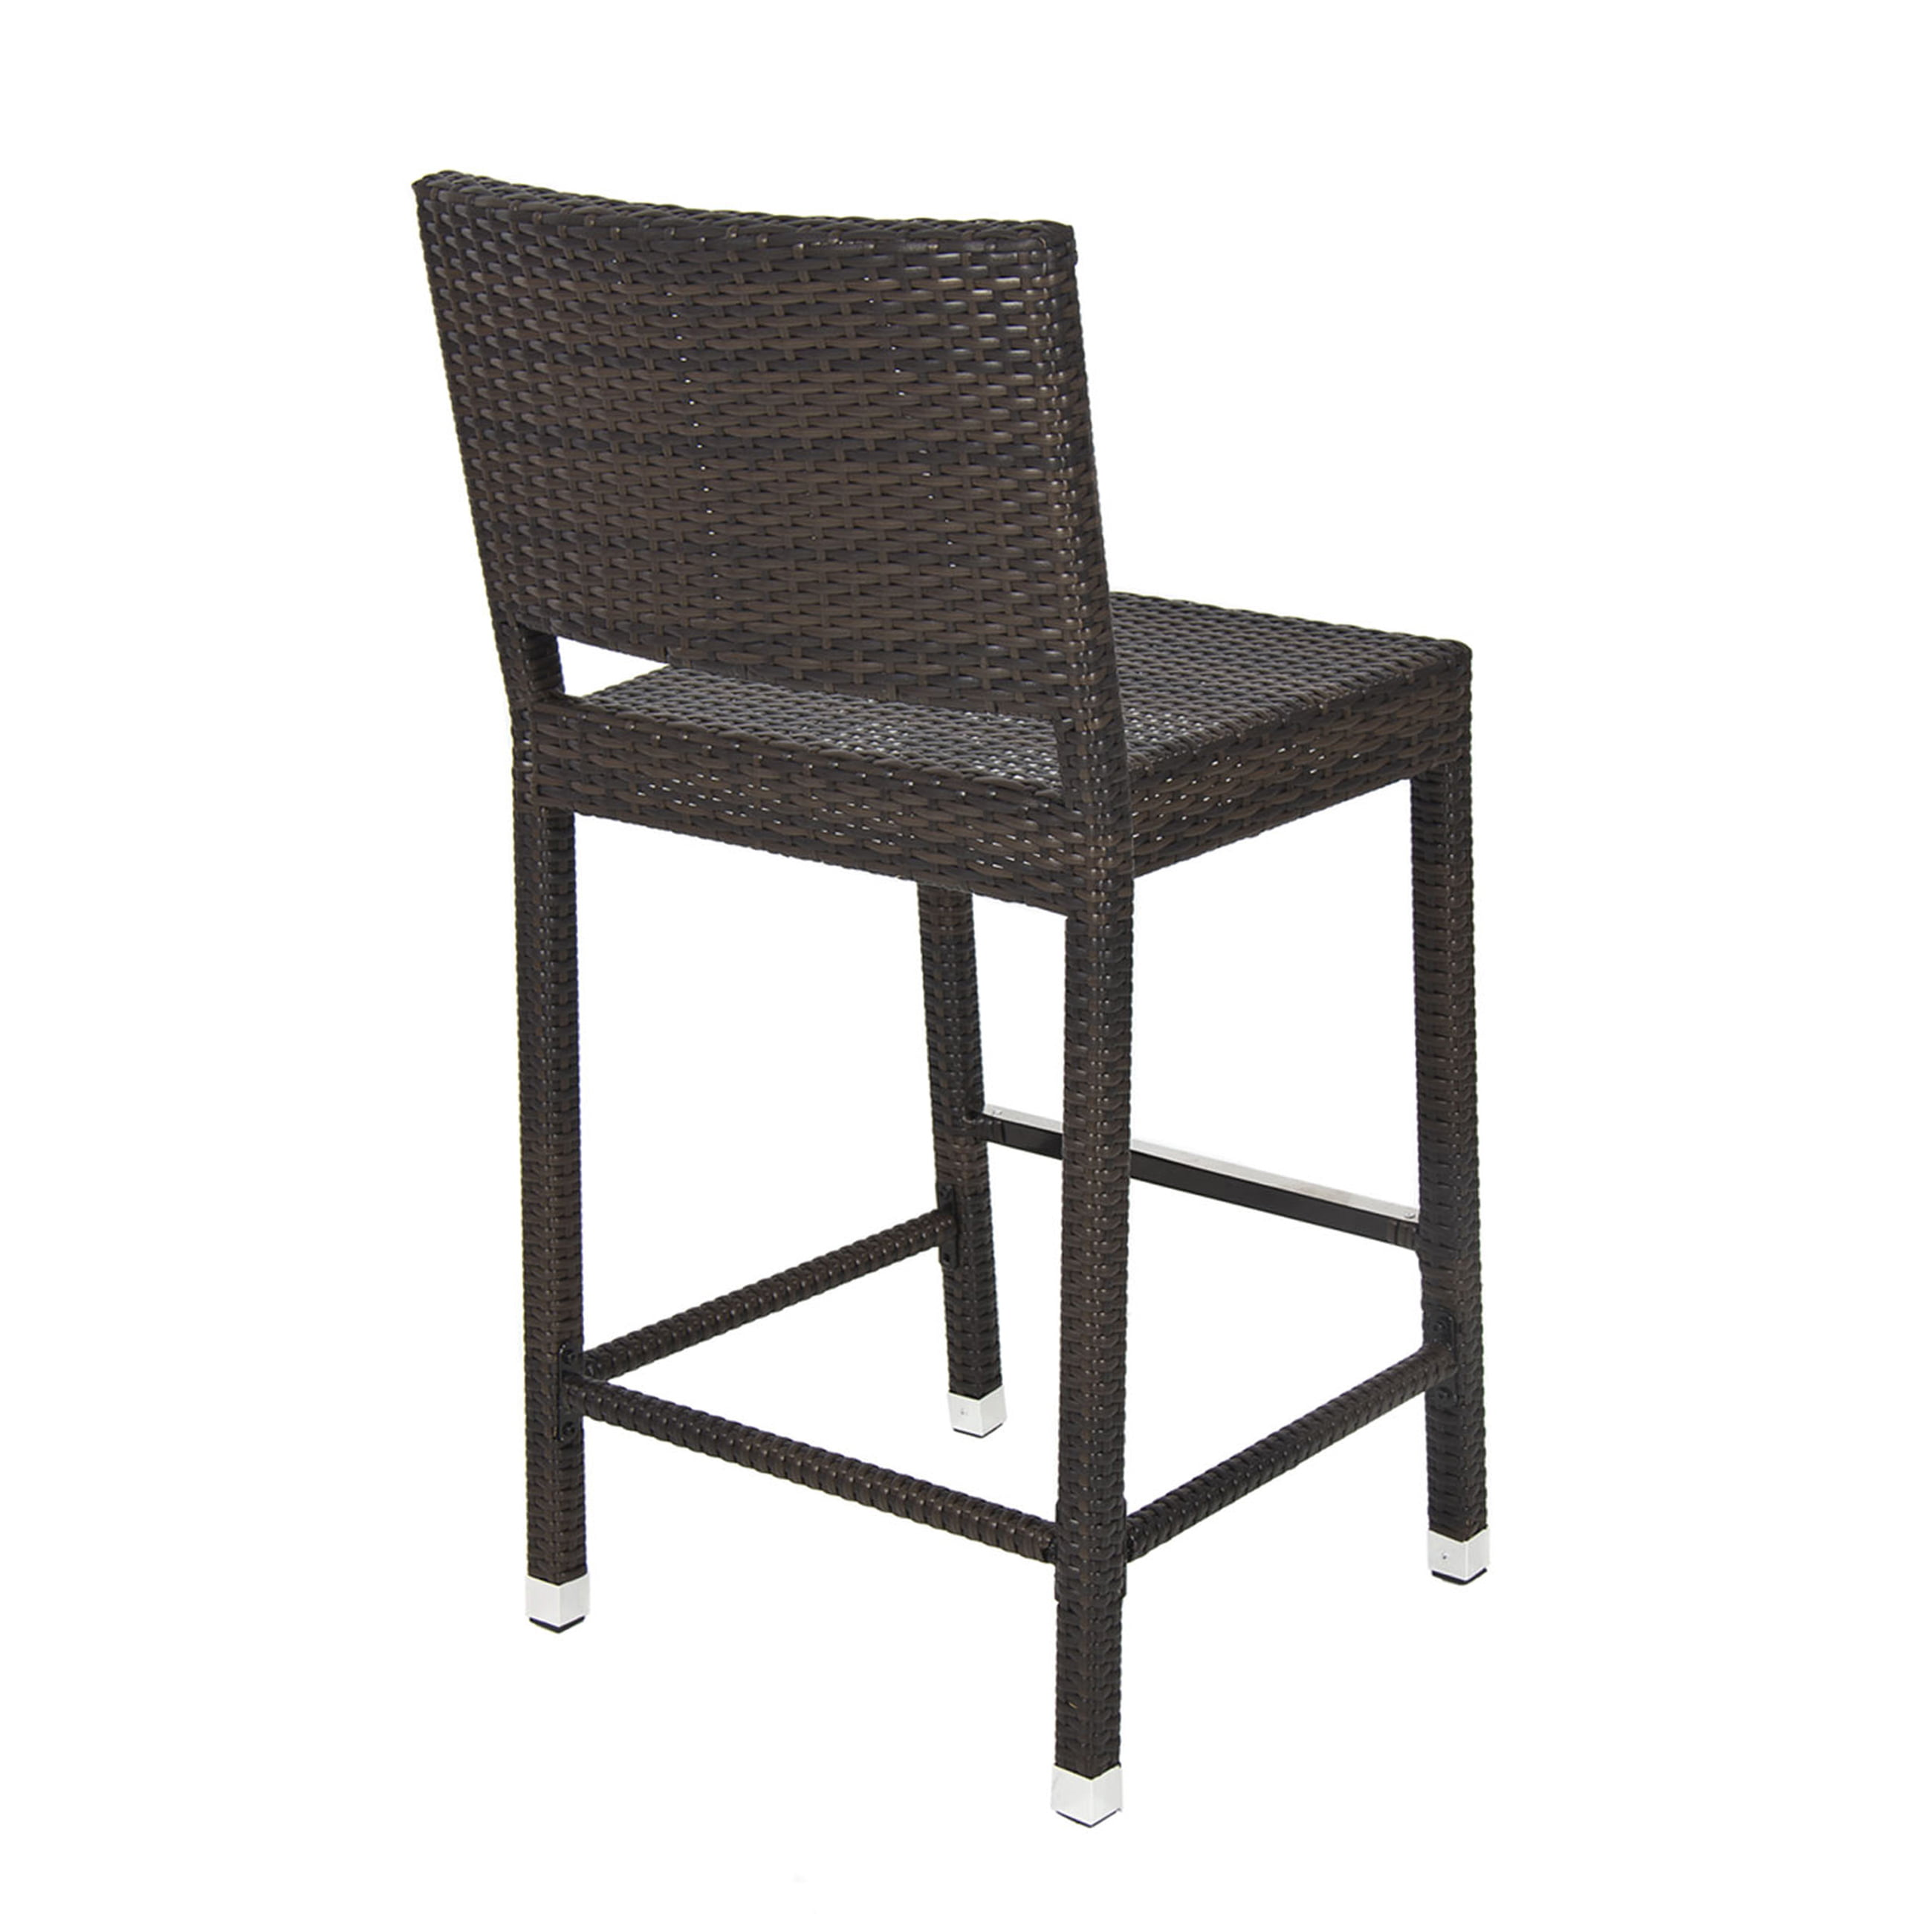 Outdoor Wicker Barstool All Weather Brown Patio Furniture New Bar Stool Walmart